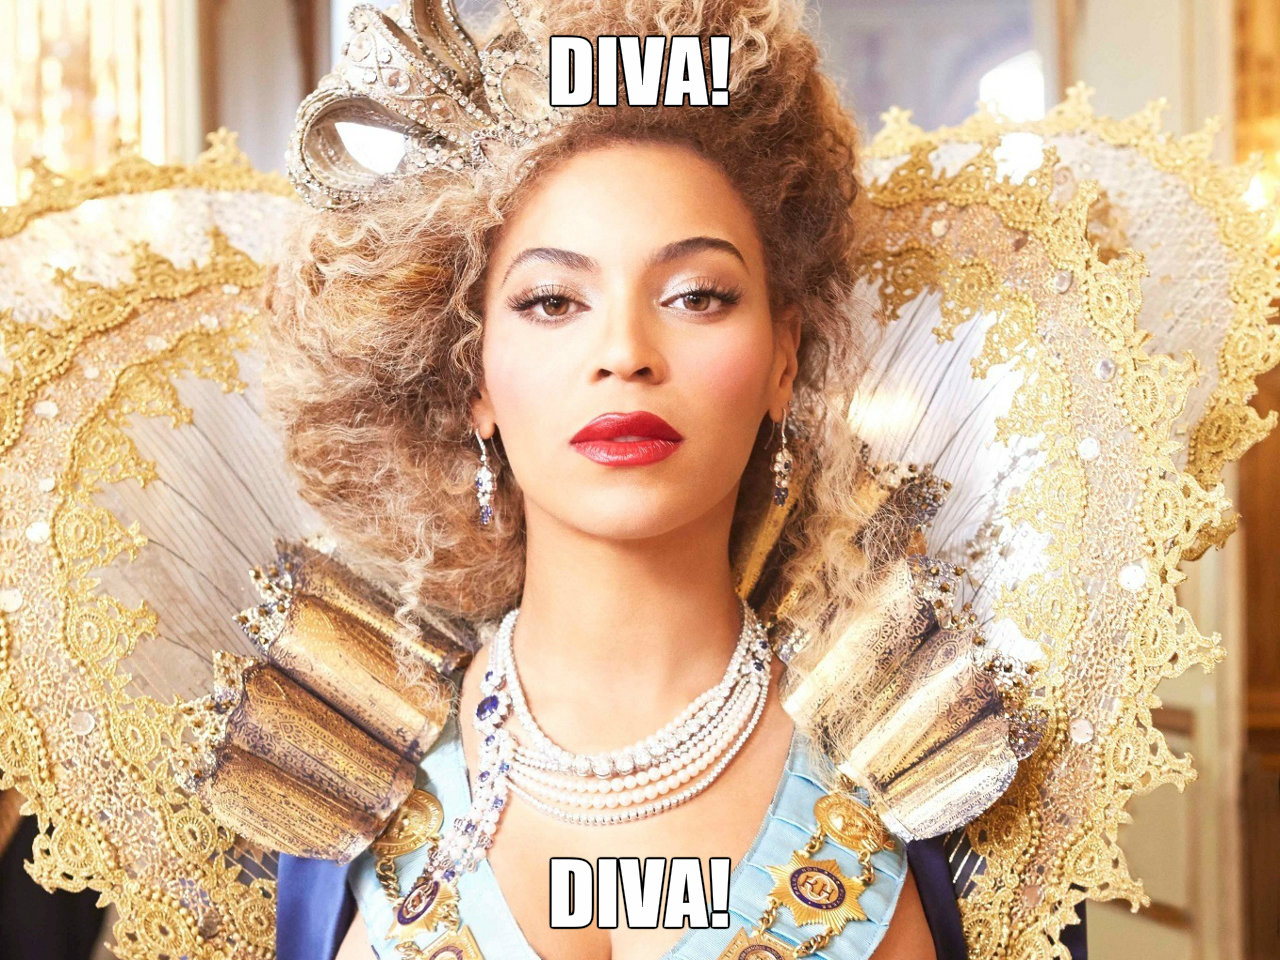 Sharntay images beyonce is aa diva hd wallpaper and background photos 33670424 - Beyonce diva video ...